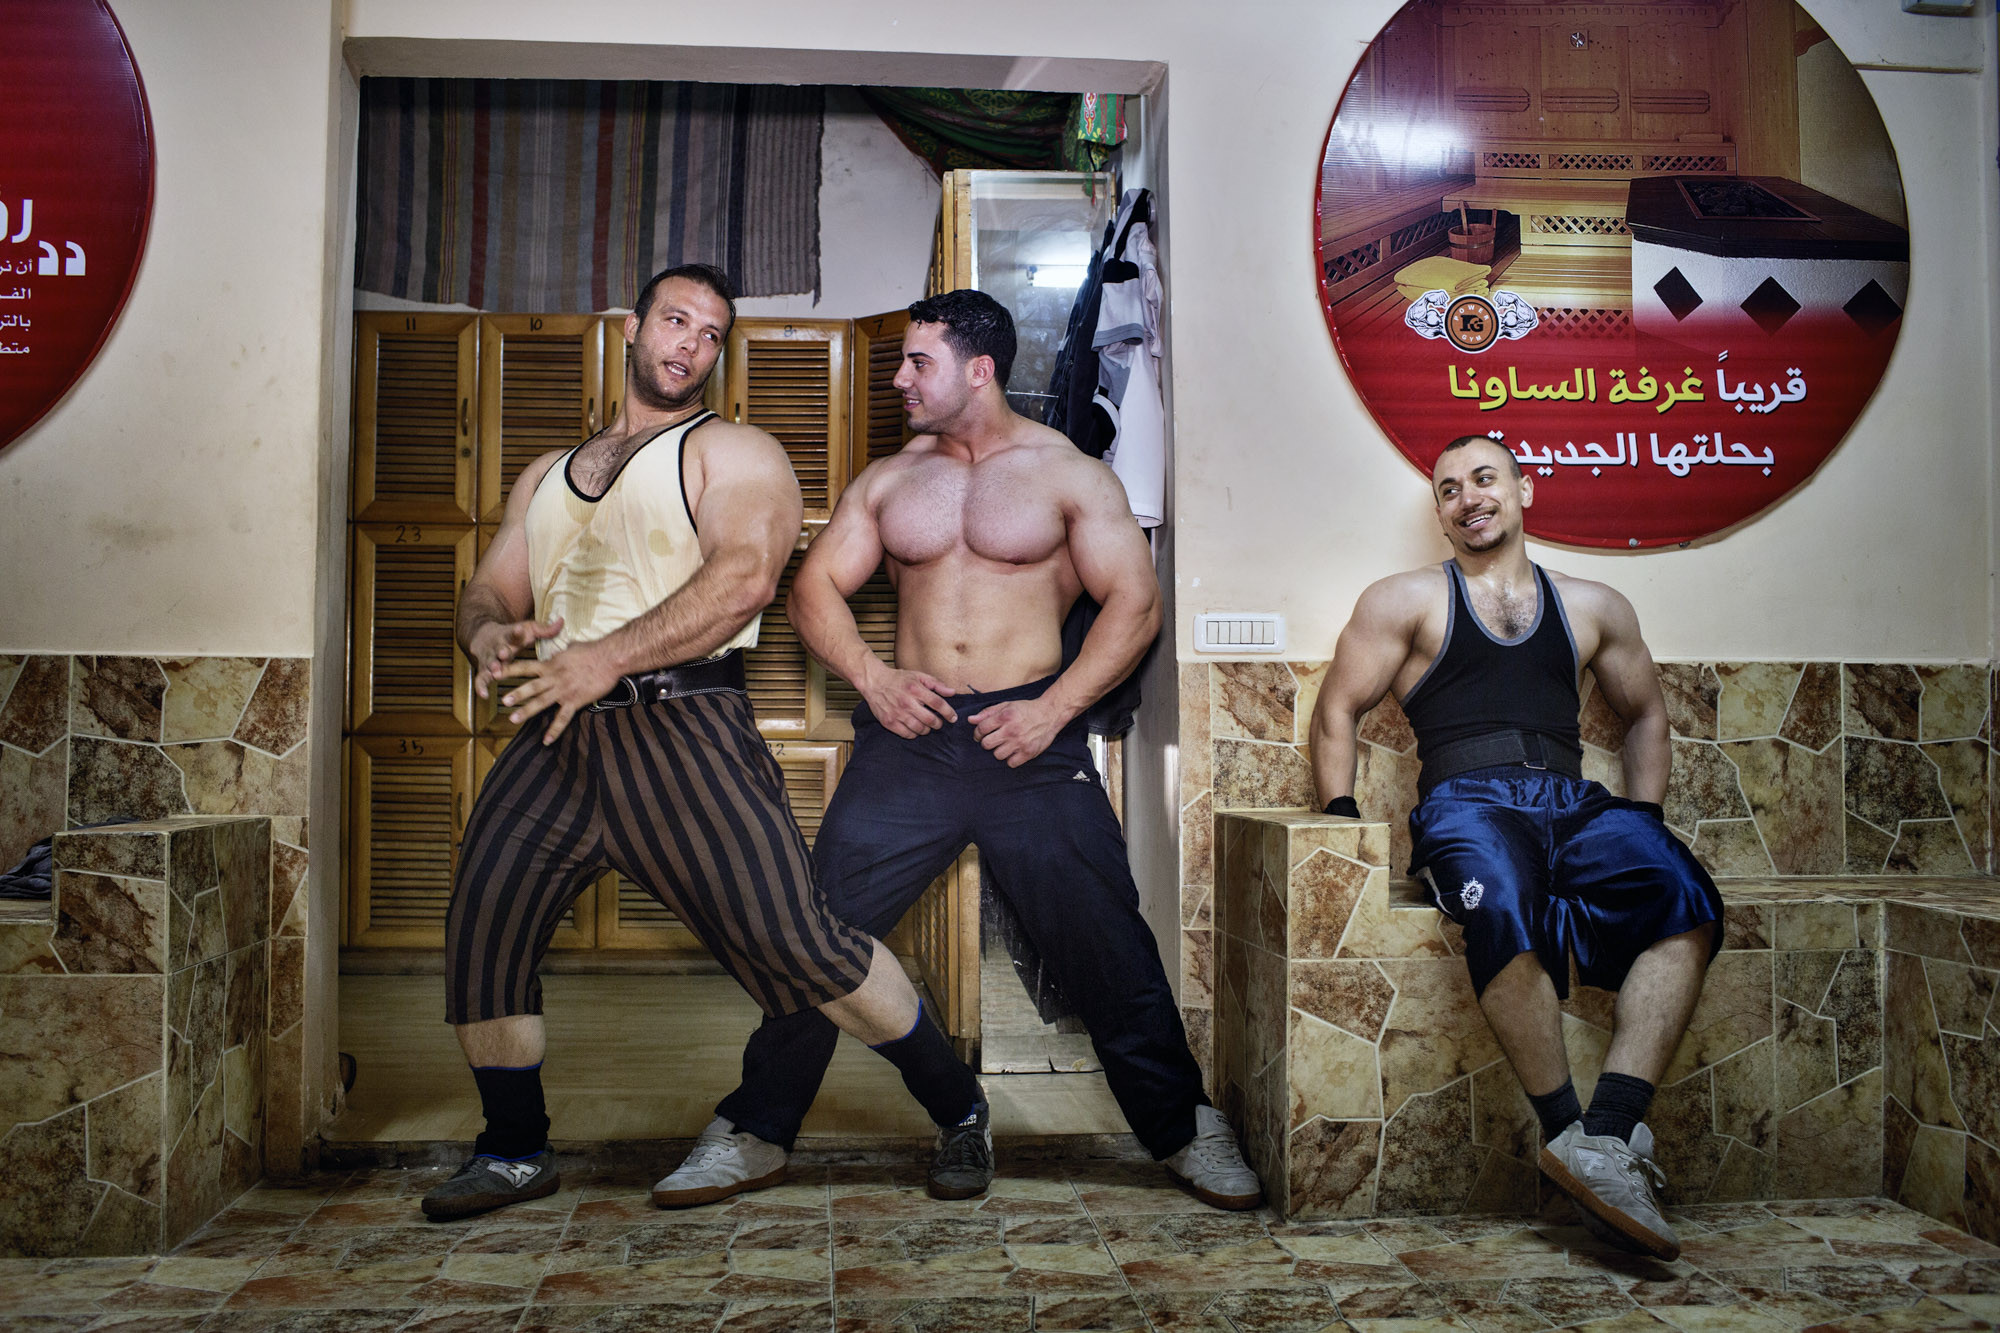 Occupied Palestinian Territories, West Bank, June 2013  Gazan body builders jovially strike poses after a workout.